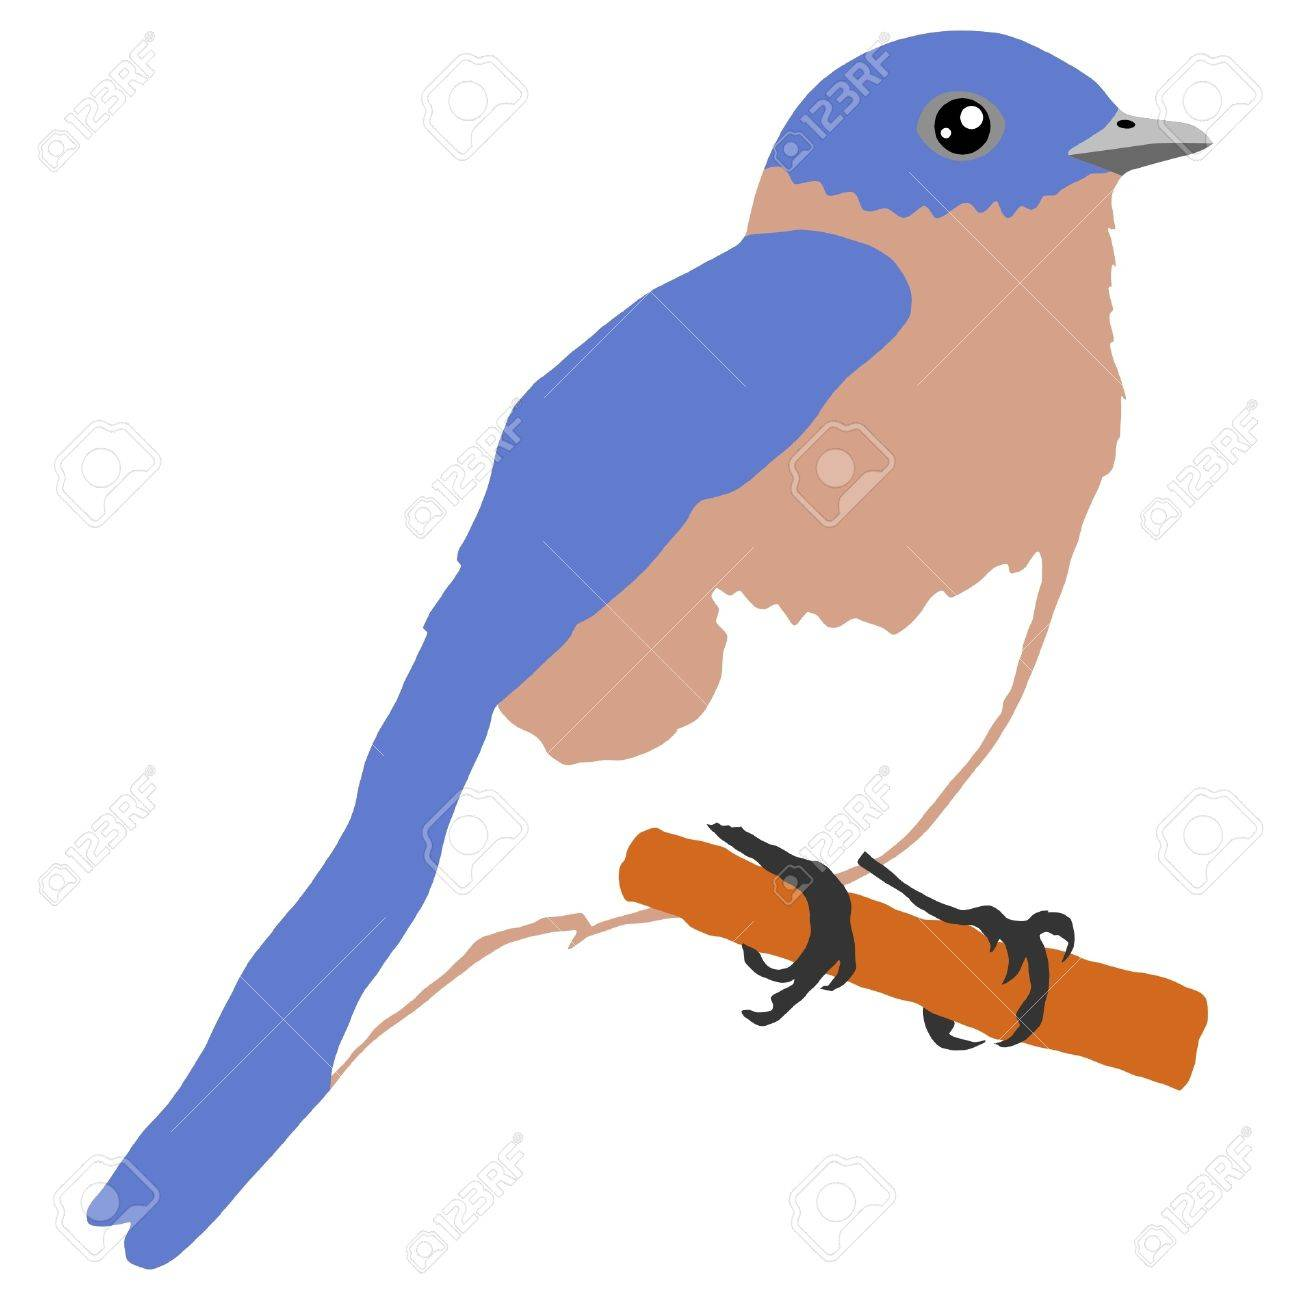 1 523 bluebird cliparts stock vector and royalty free bluebird rh 123rf com Free Bird Graphics Free Bird Graphics